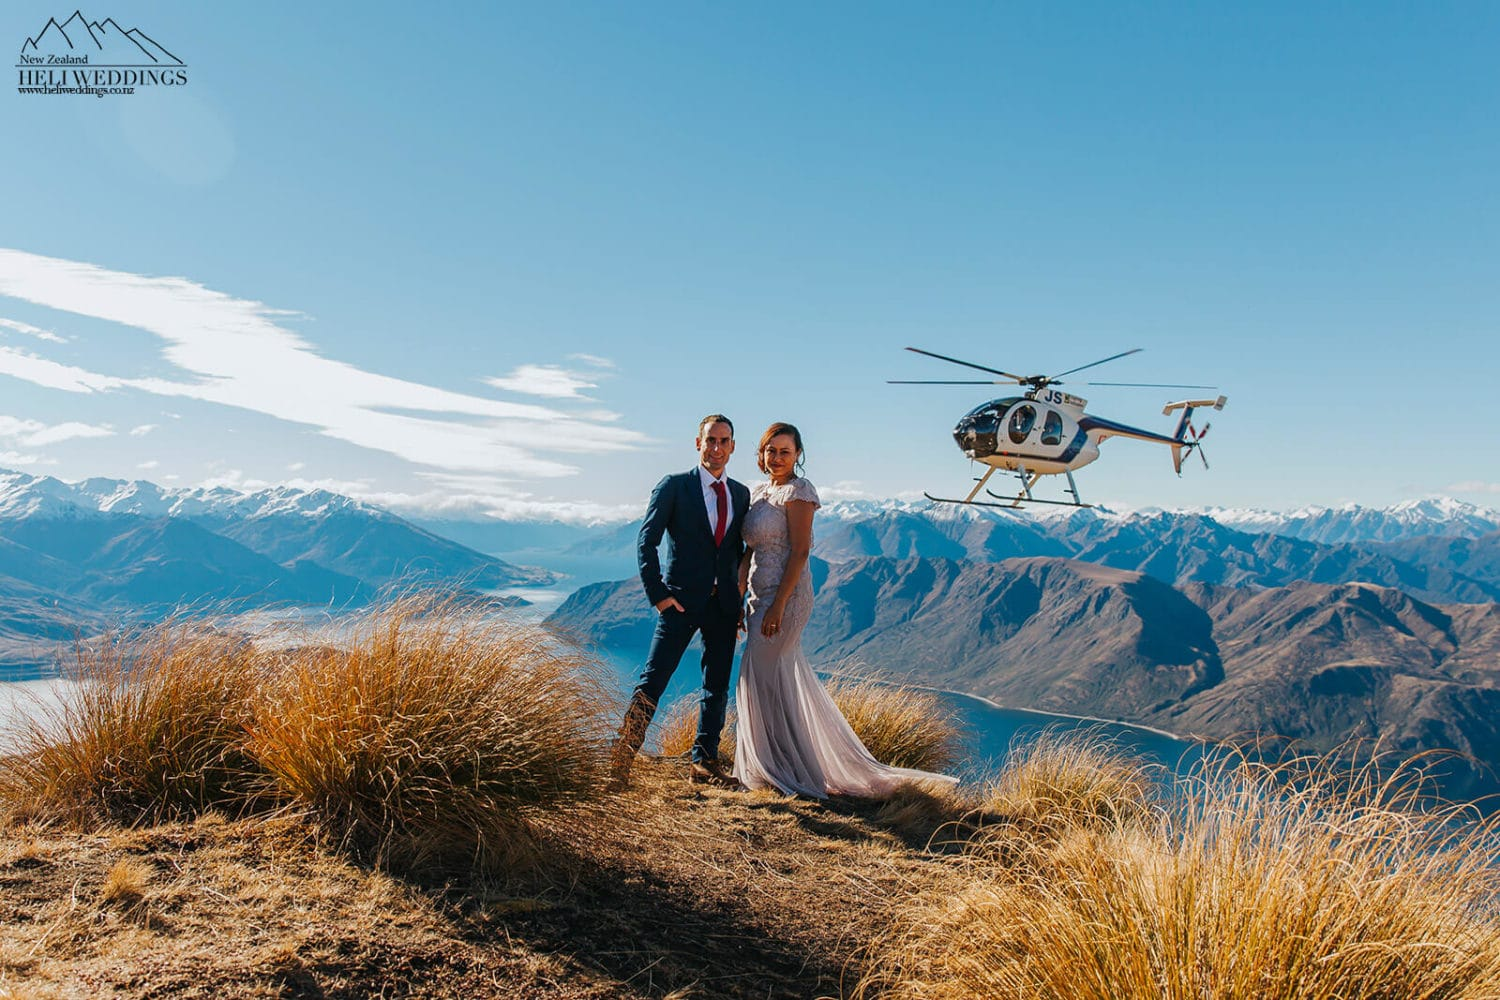 Coromandel Peak Wedding packages with helicopter